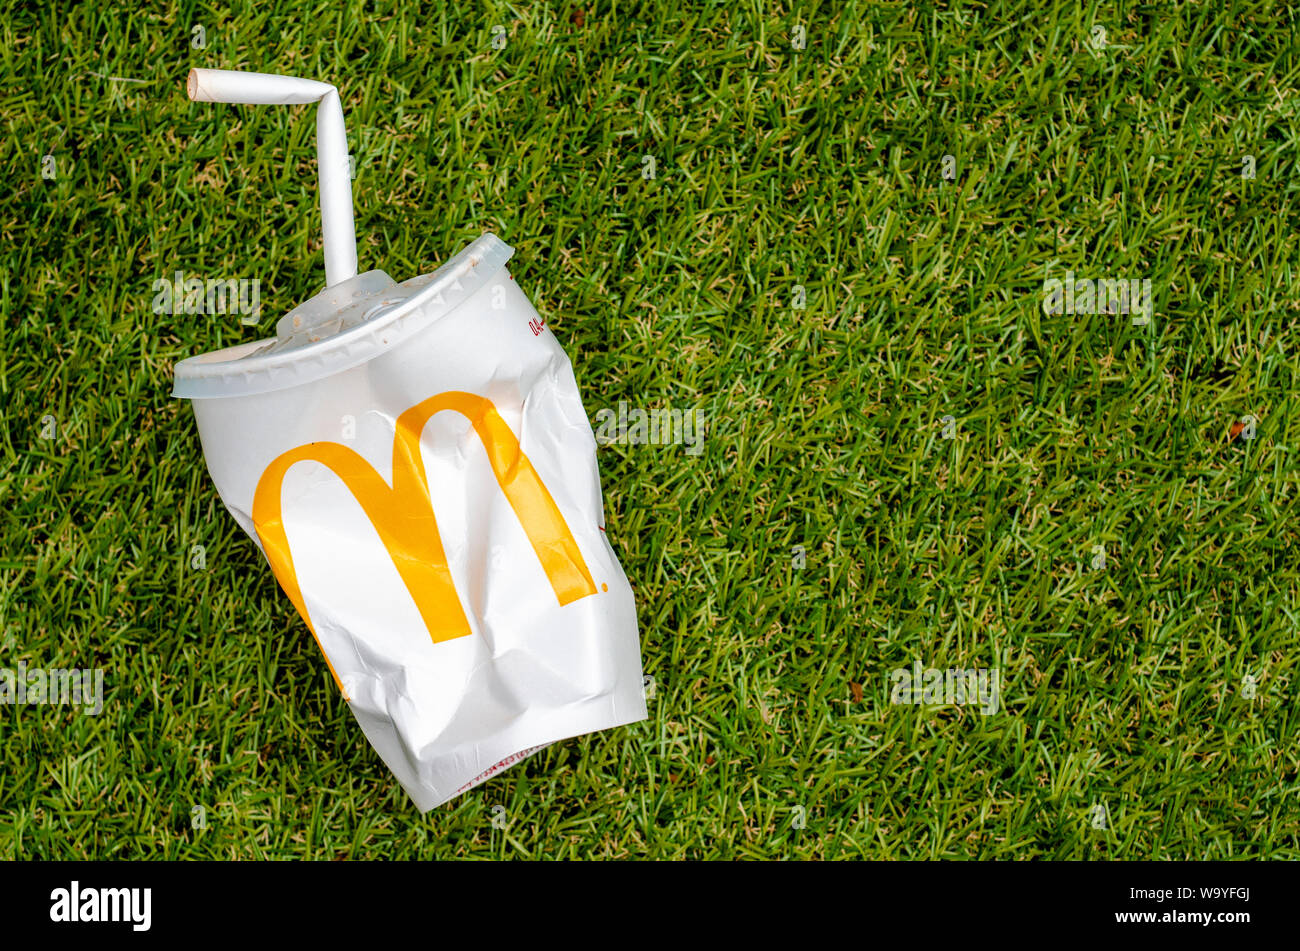 McDonald's Empty Cola Cup with Paper Straw, McDonald's is the world's largest chain of hamburger fast food restaurants. Stock Photo